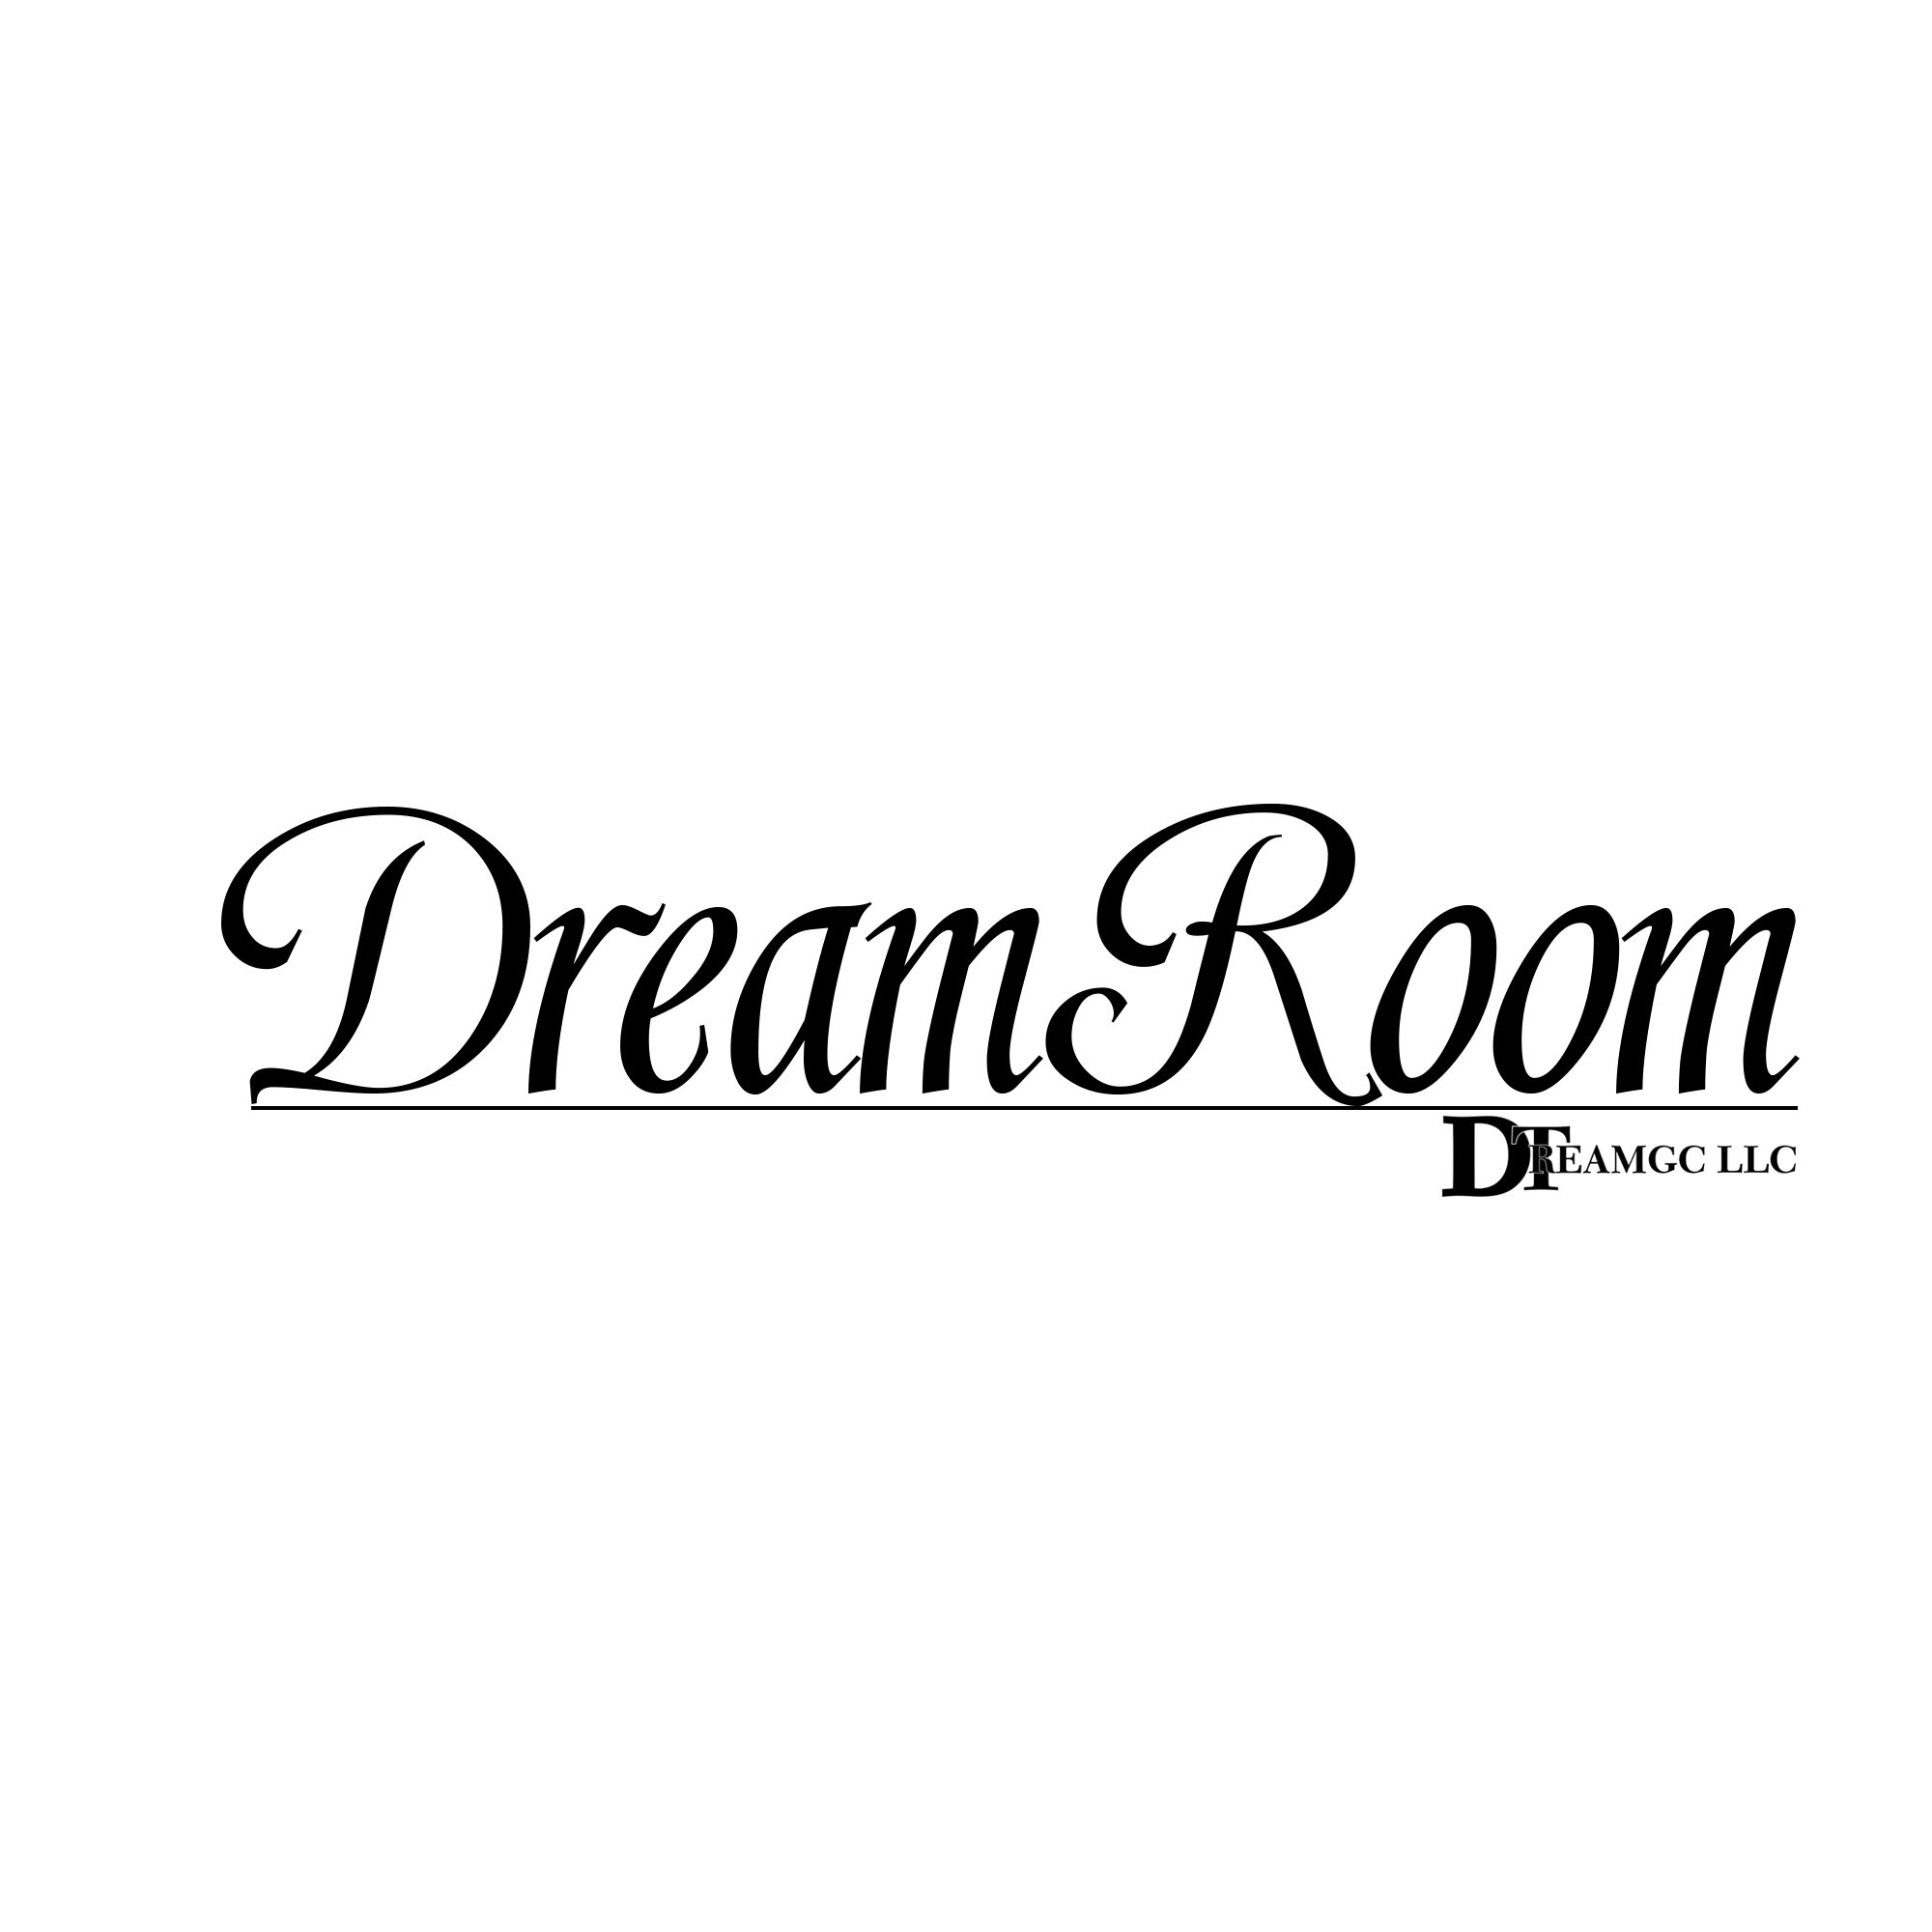 THE DREAM ROOM image 5